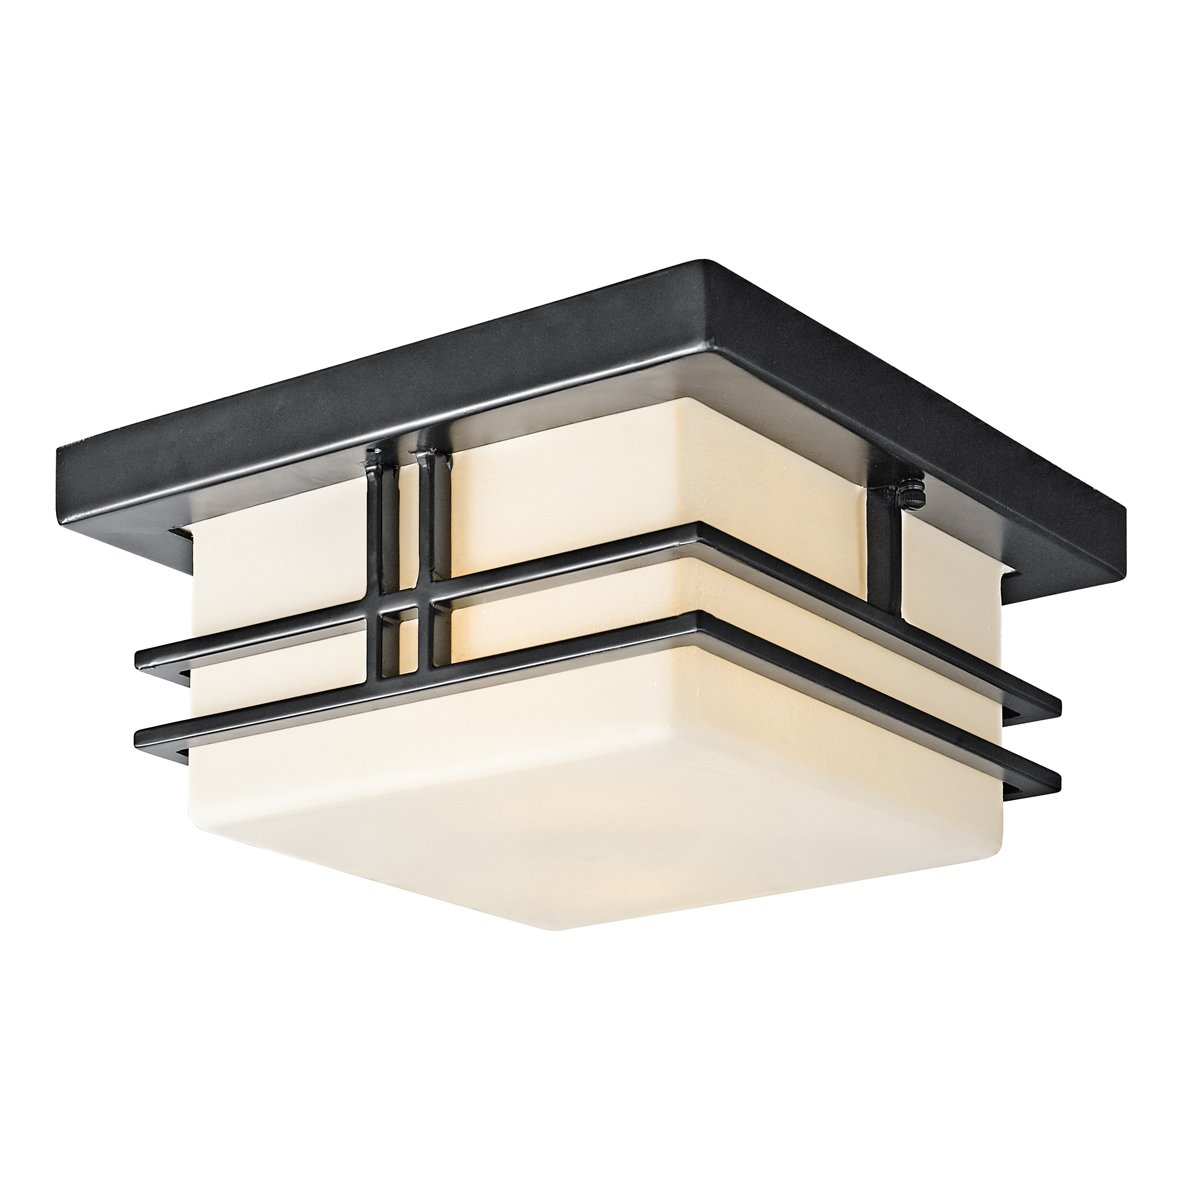 Kichler 49206bk two light outdoor ceiling mount flush mount kichler 49206bk two light outdoor ceiling mount flush mount ceiling light fixtures amazon arubaitofo Choice Image